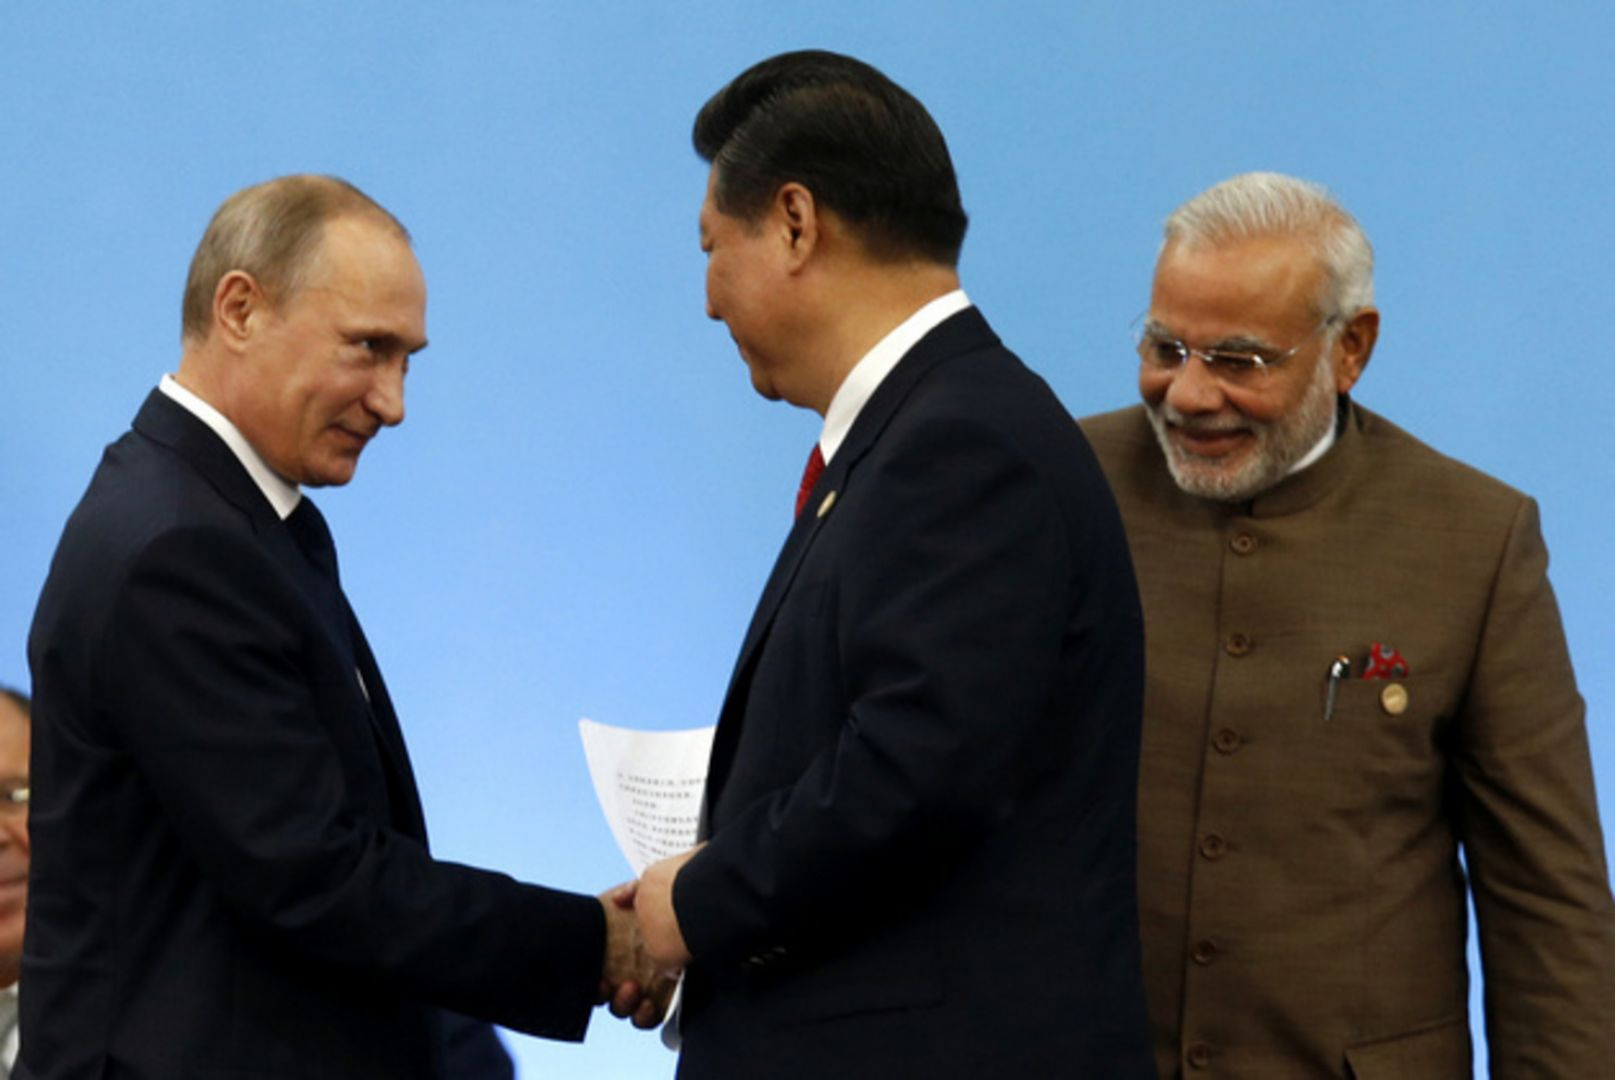 Reports indicate that the Russian and Chinese leadership have offered to help mediate tensions between Pakistan and India. Credit: Reuters